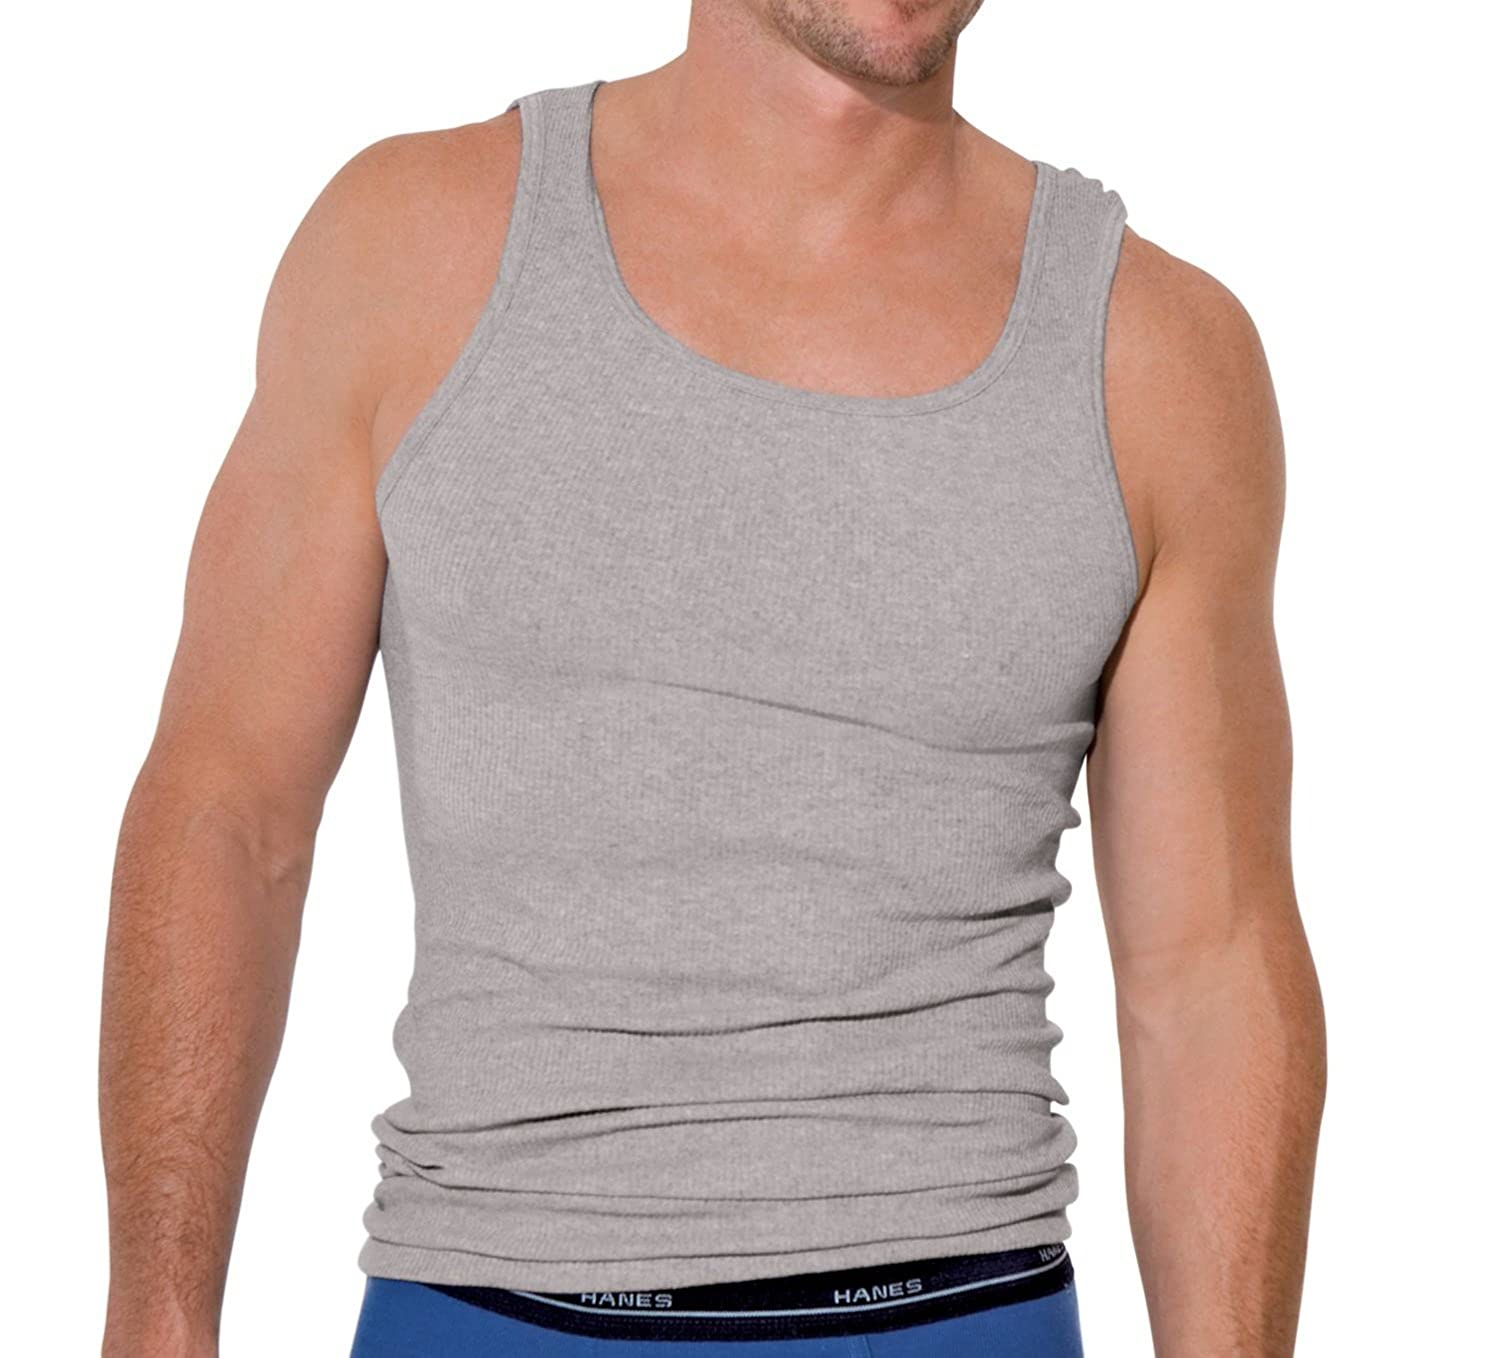 681559d6994f Hanes Men's Red Label Dyed Tanks 2 Pack, (Med/Assorted Colors) at Amazon  Men's Clothing store: Undershirts